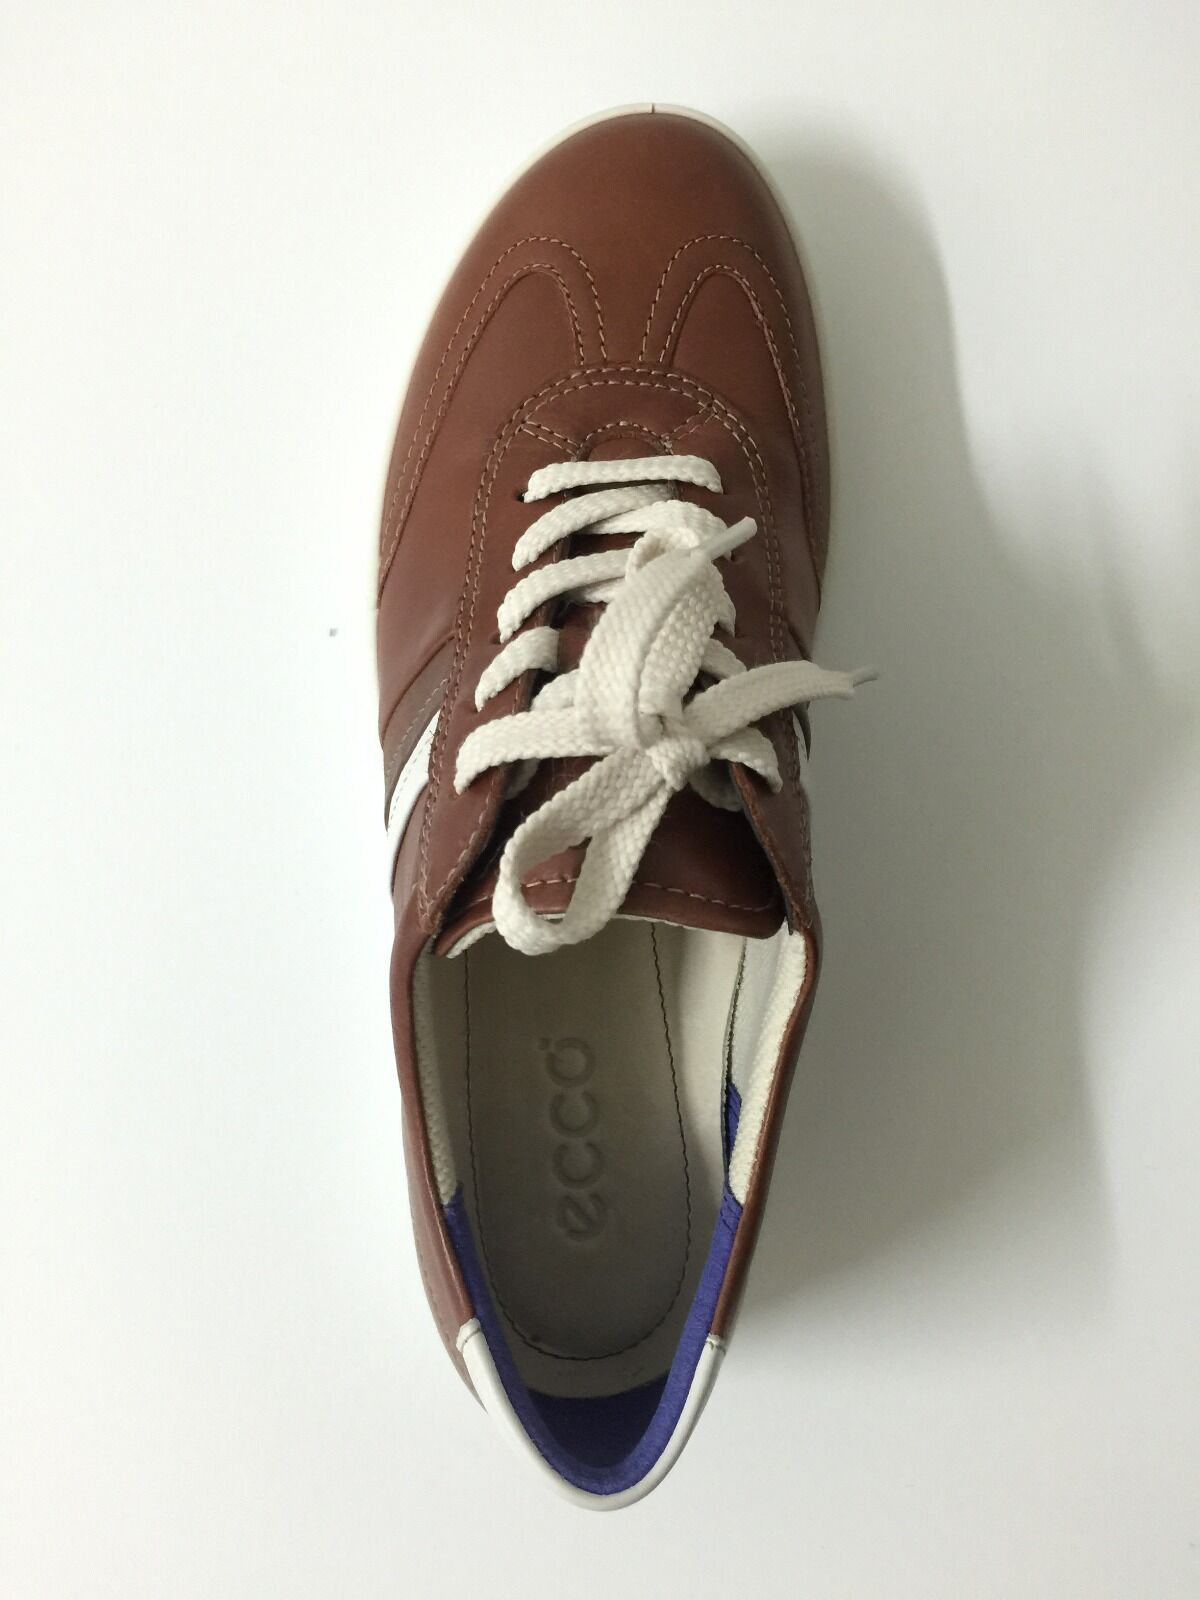 ECCO Women Aimee Casual Tie Sneakers & Athletic shoes shoes shoes in MAHOGANY,US Size 6 6.5 25baba